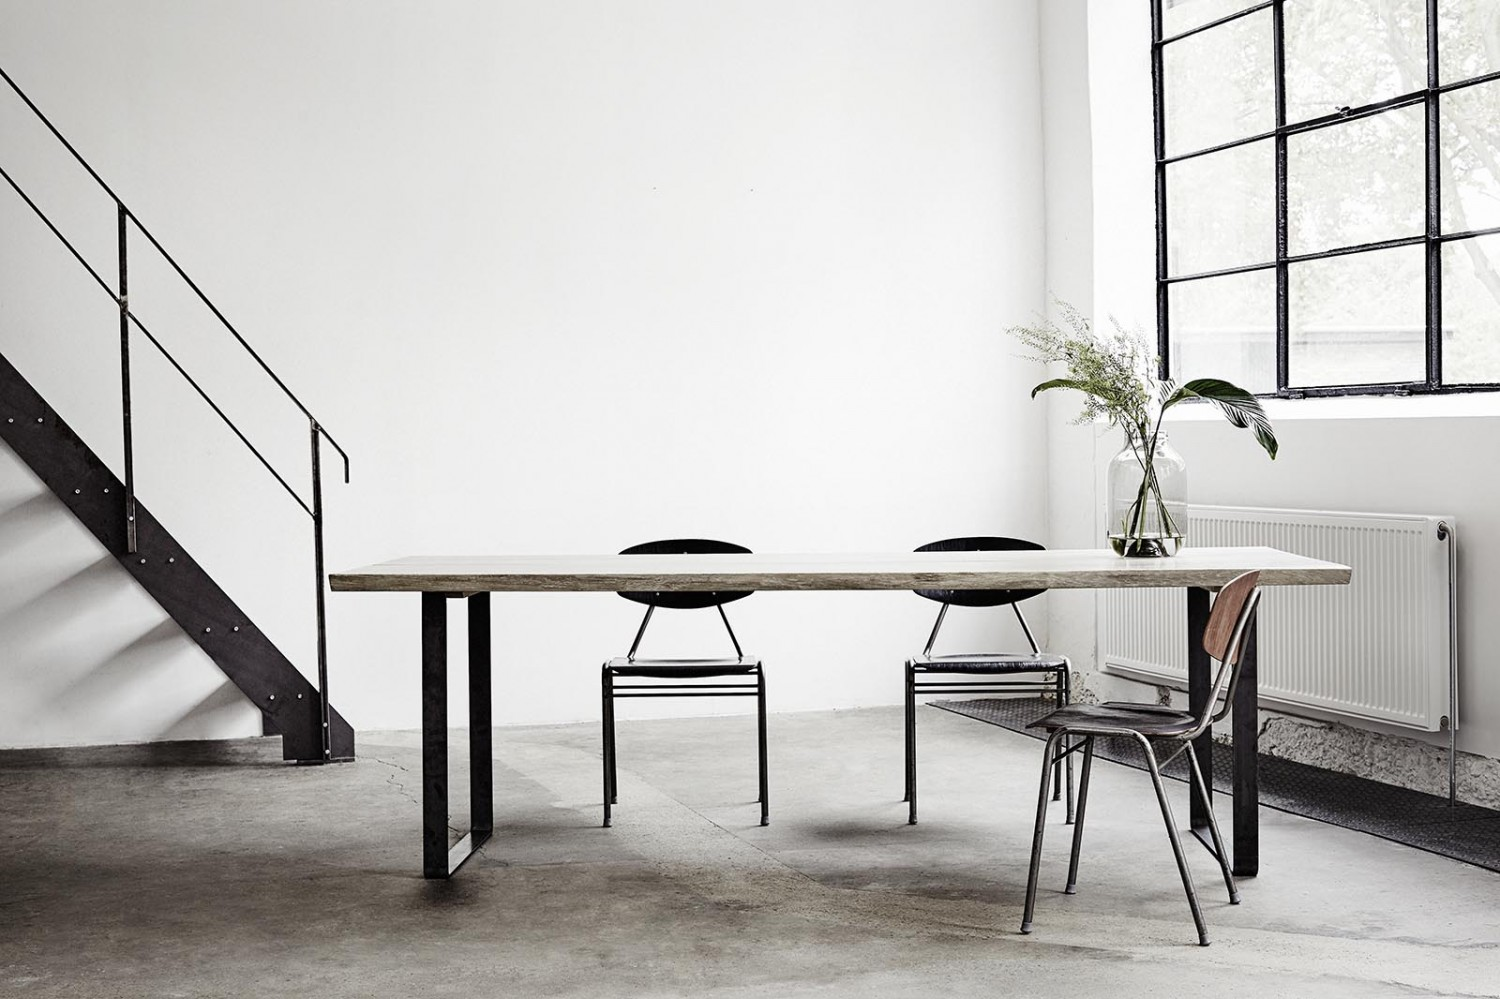 ent Copenhagen plank table made of oak tree and their metal table legs.